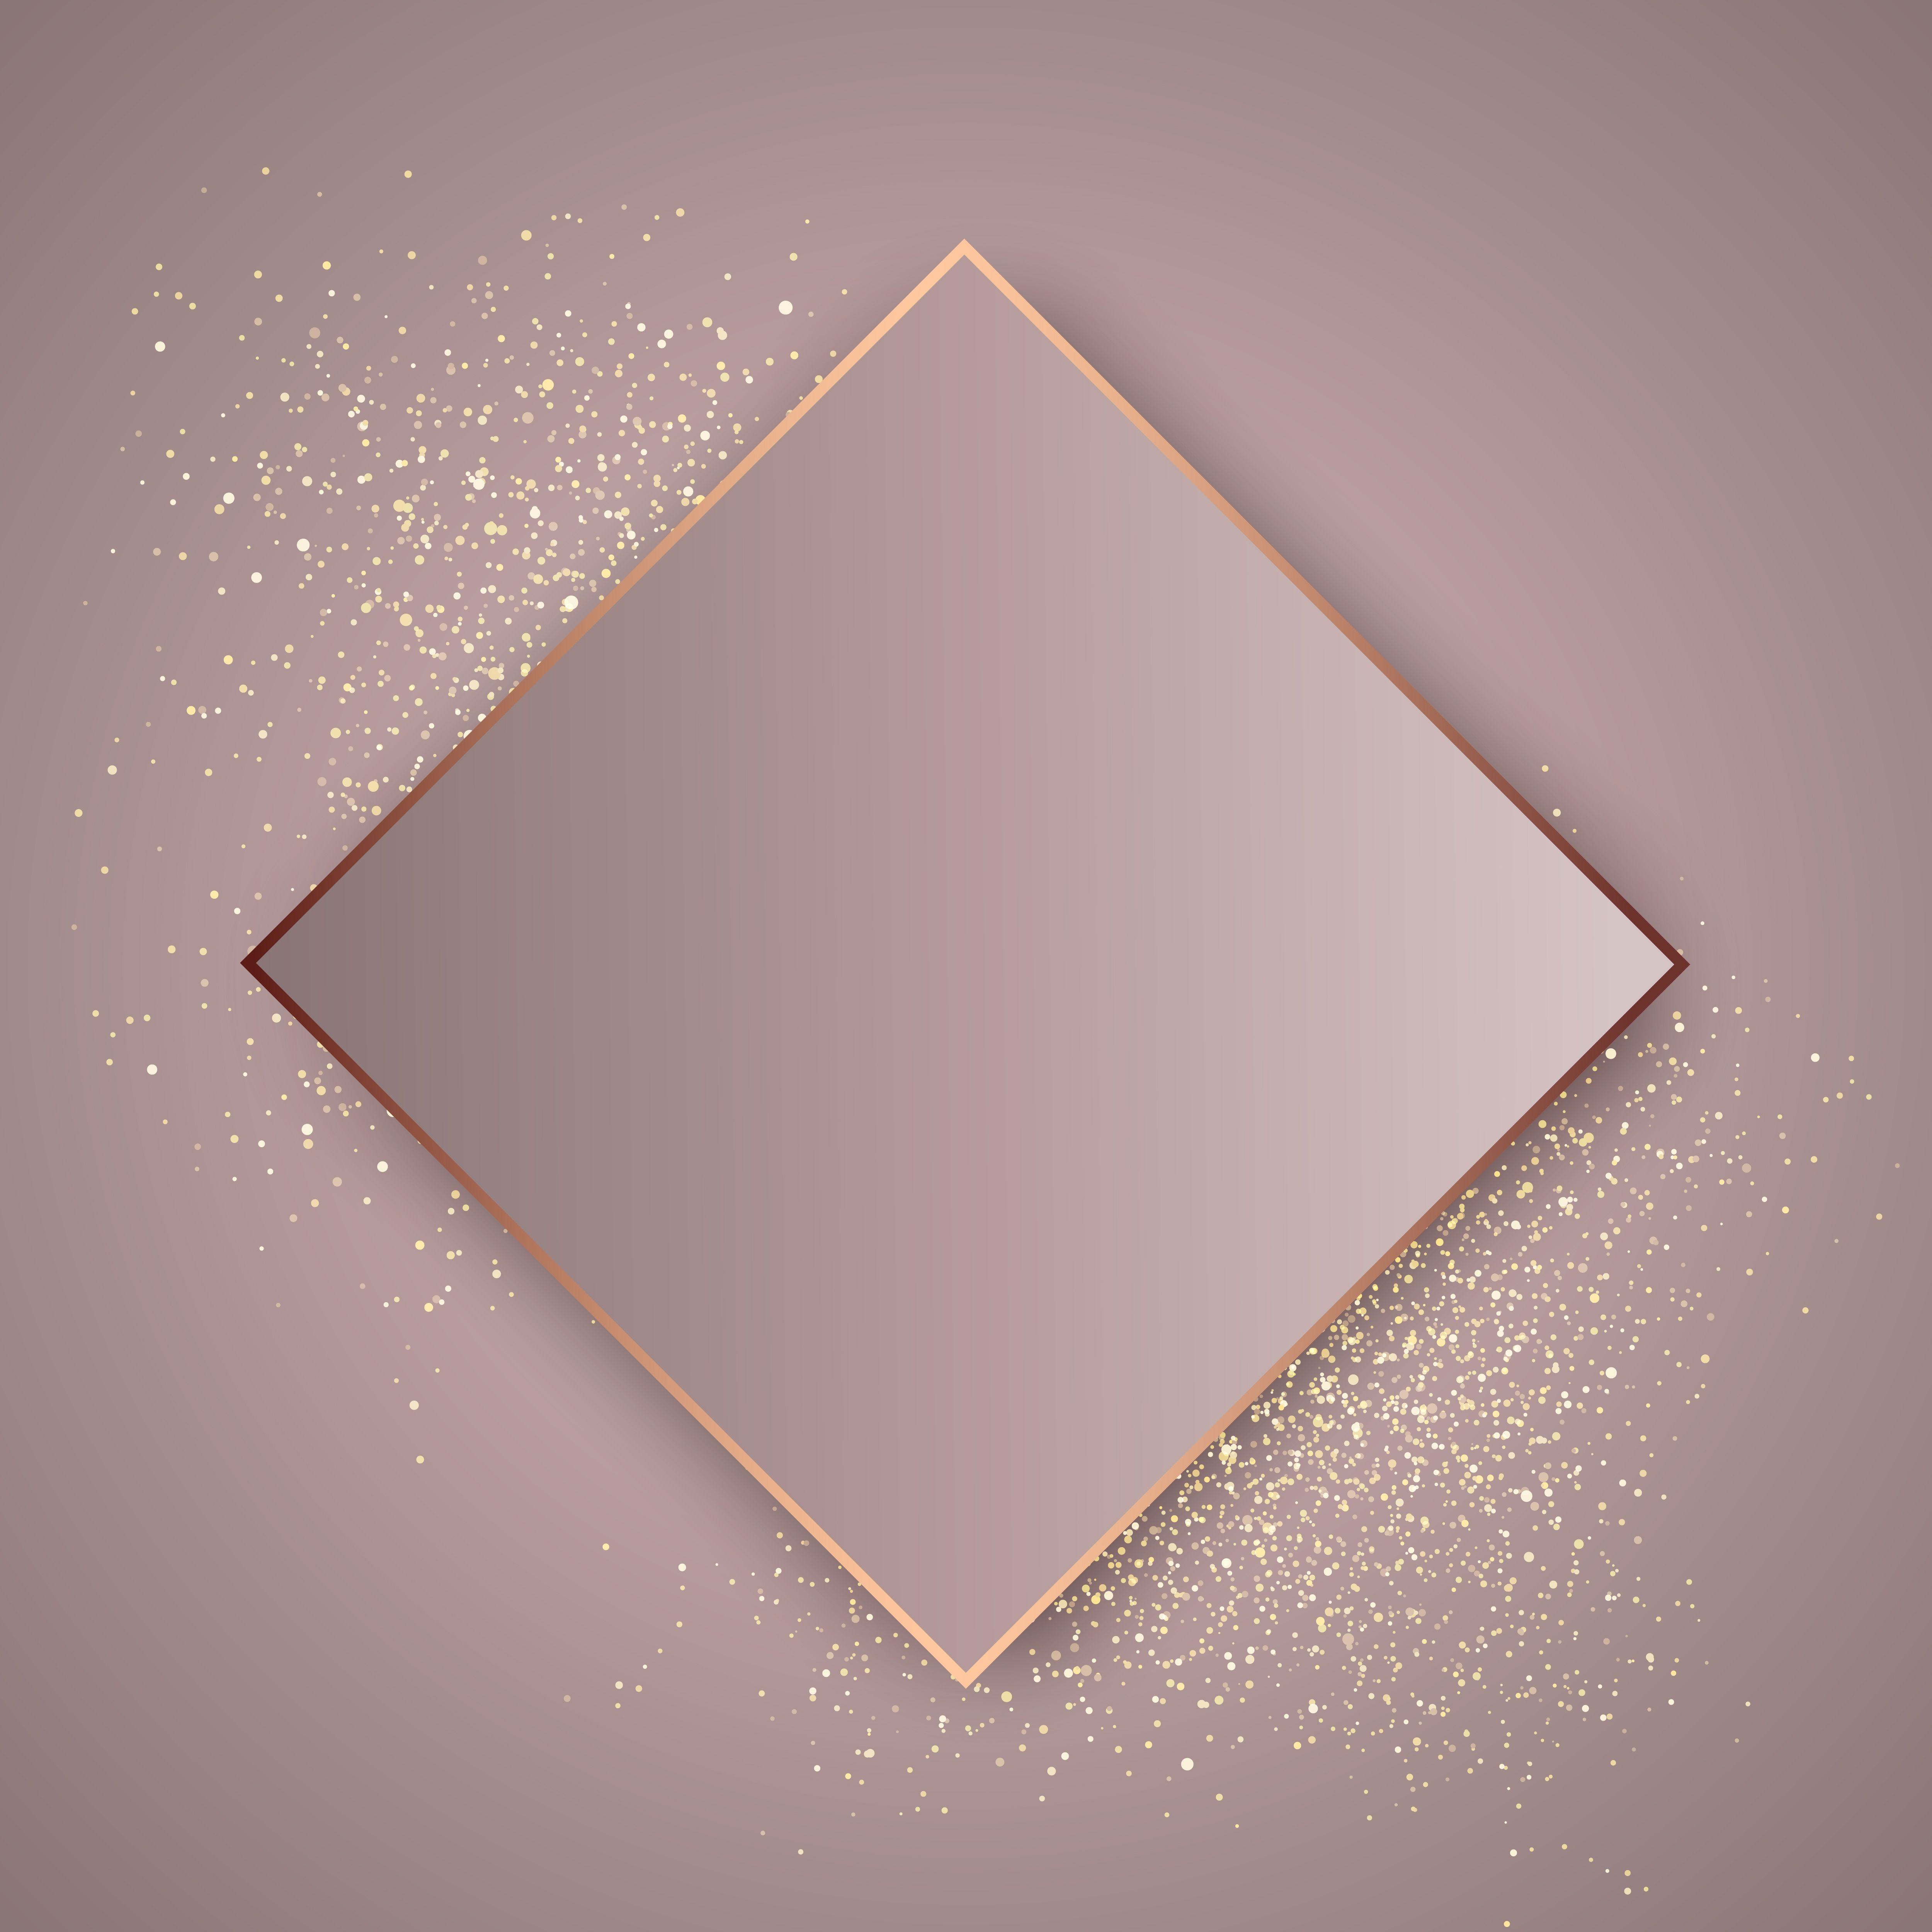 Rose Gold Glitter Background Vector Choose From Thousands Of Free Vectors Clip Art Designs Gold Glitter Background Glitter Background Pink Glitter Background